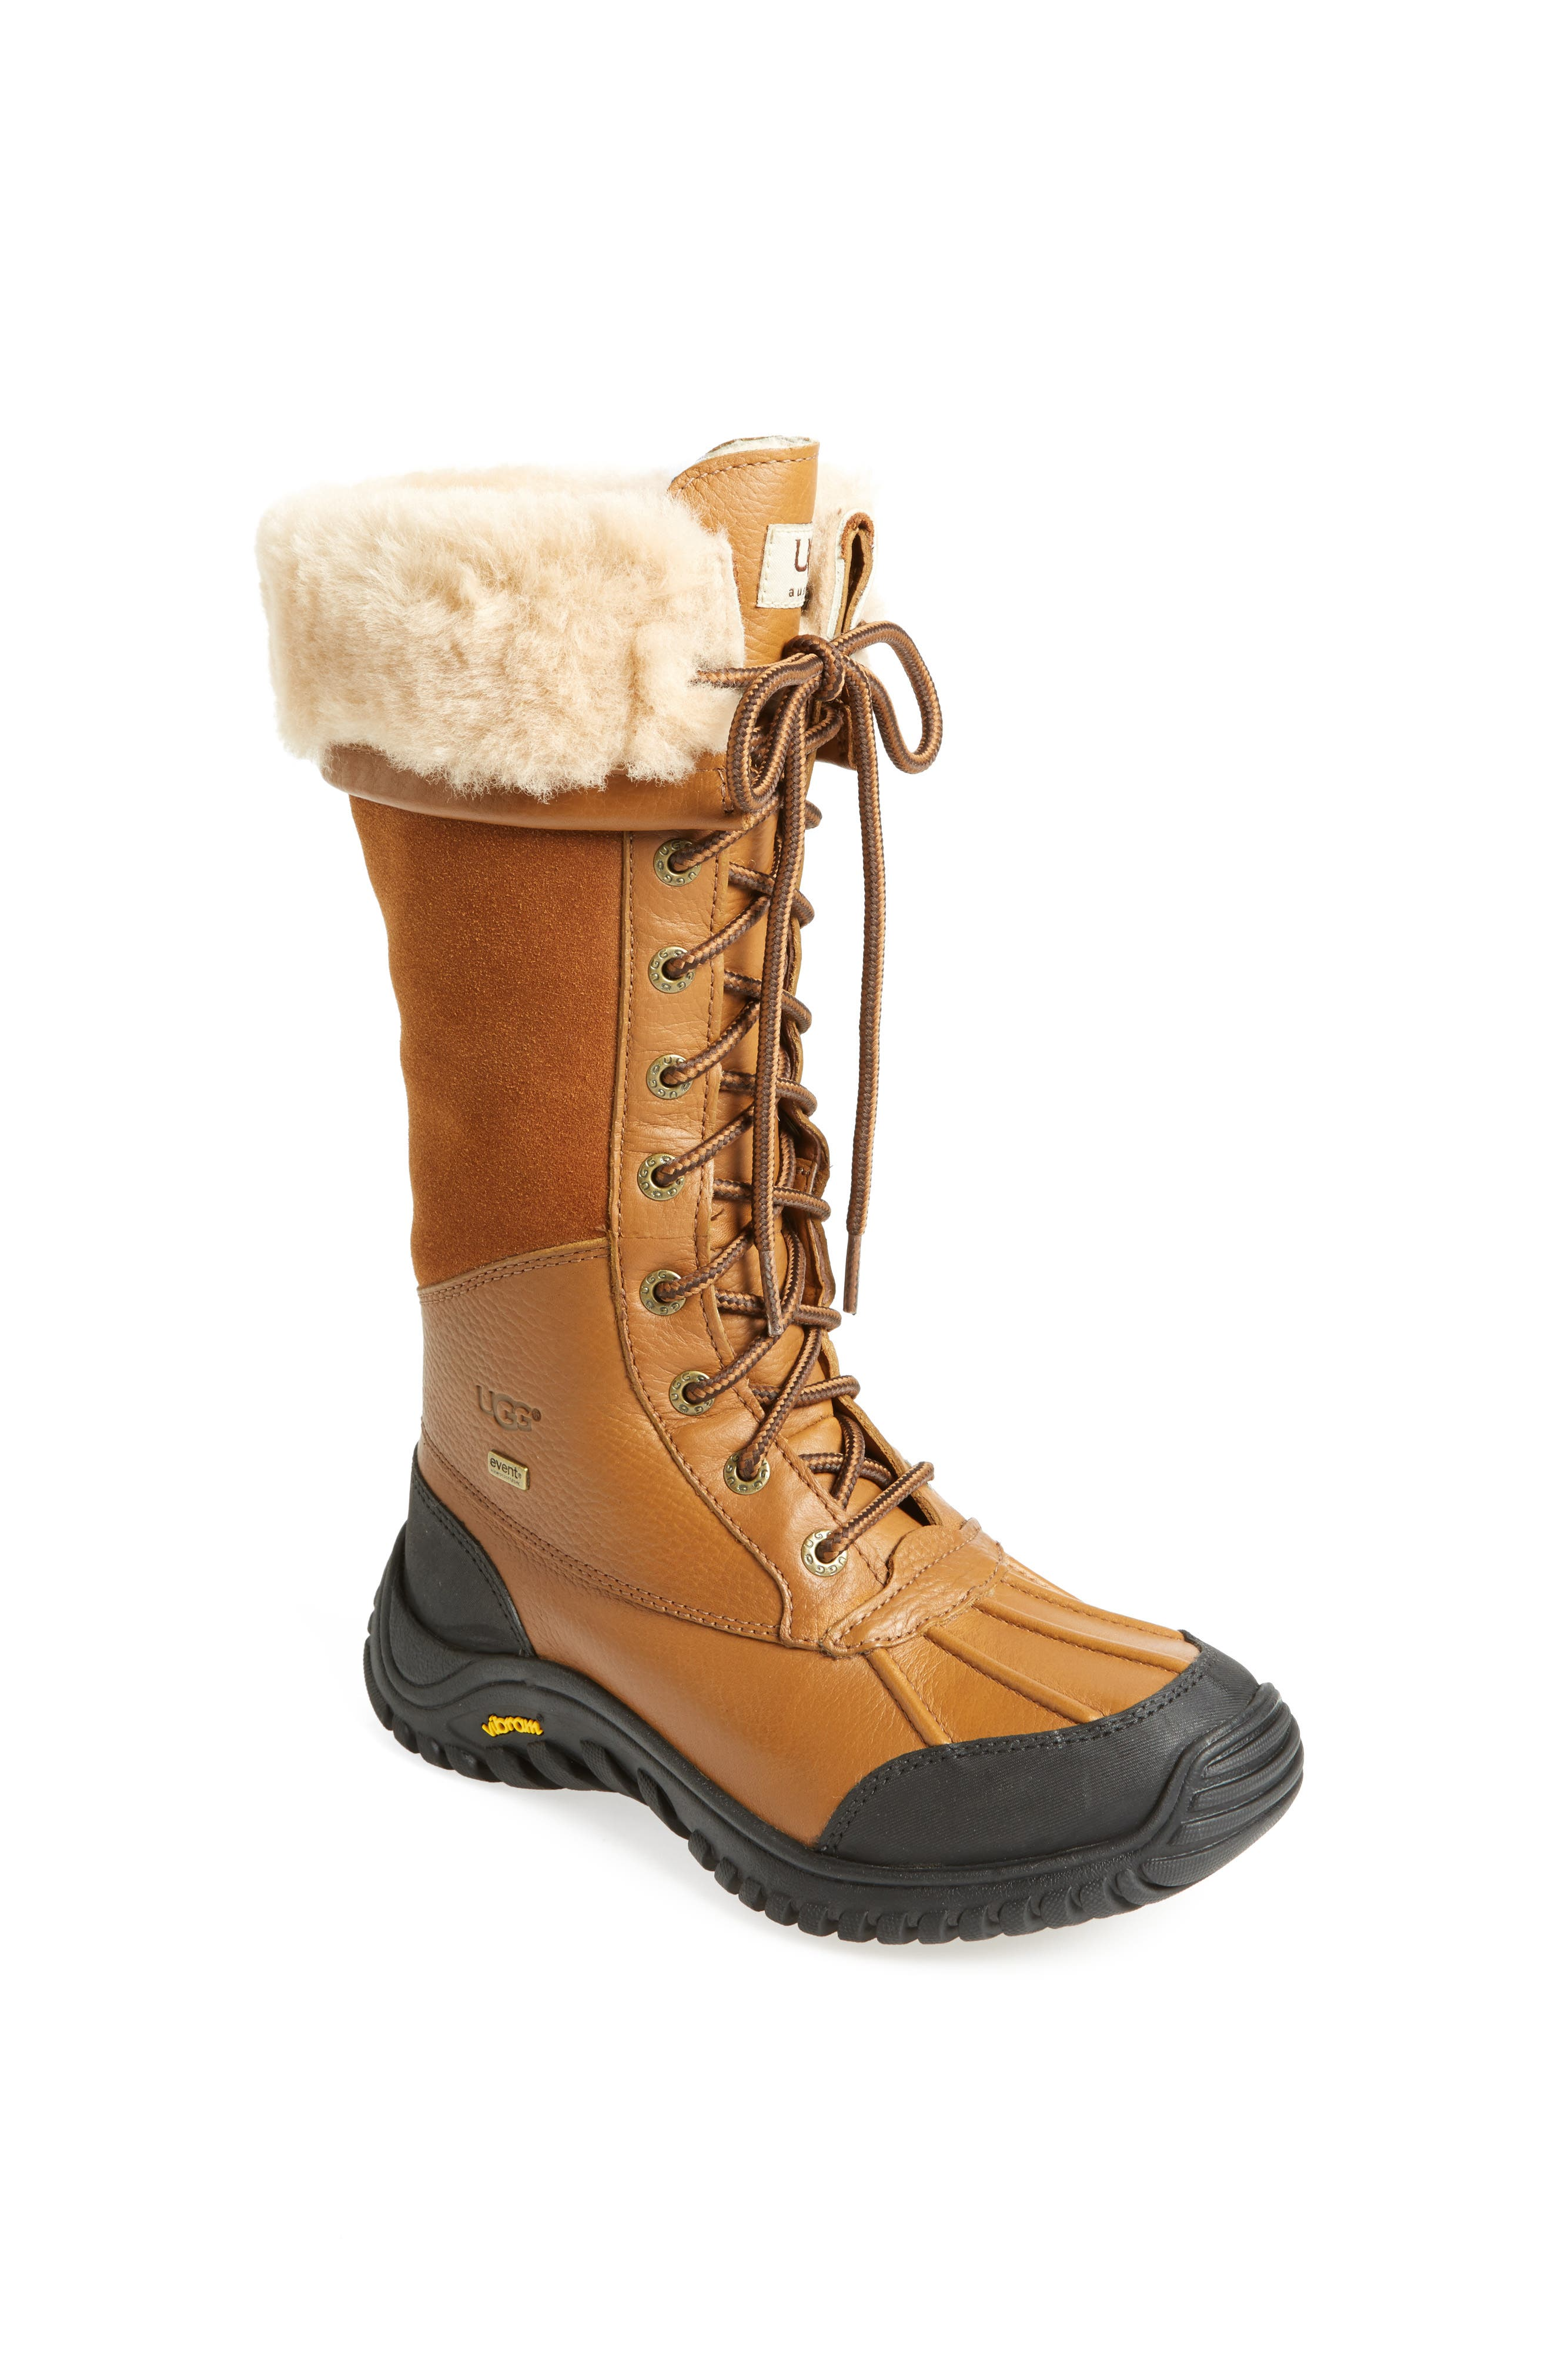 Adirondack Waterproof Tall Boot,                             Alternate thumbnail 16, color,